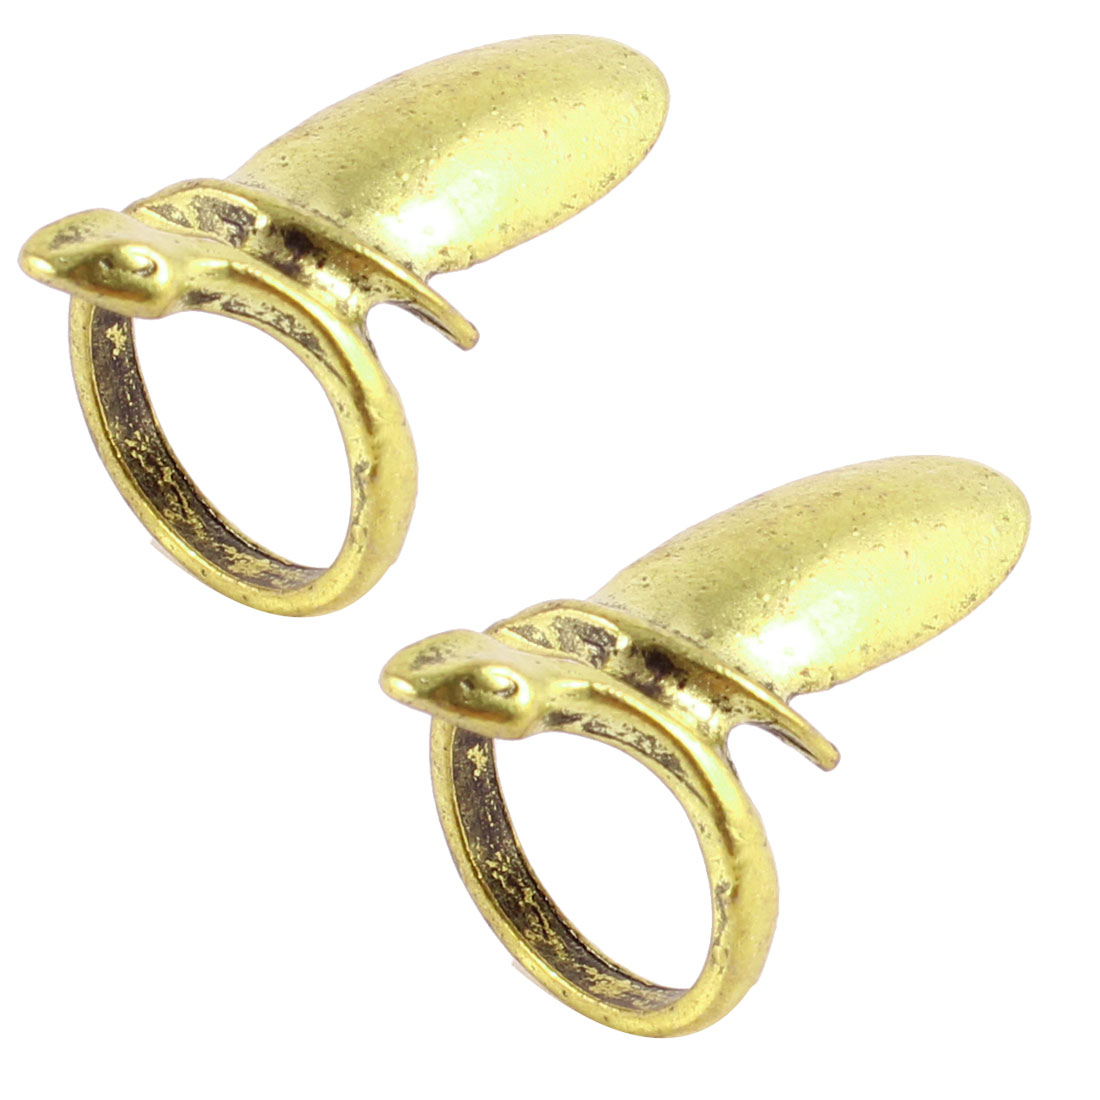 2 Pcs Bronze Tone Meatl Nail Detail Finger Ring US 2 1/4